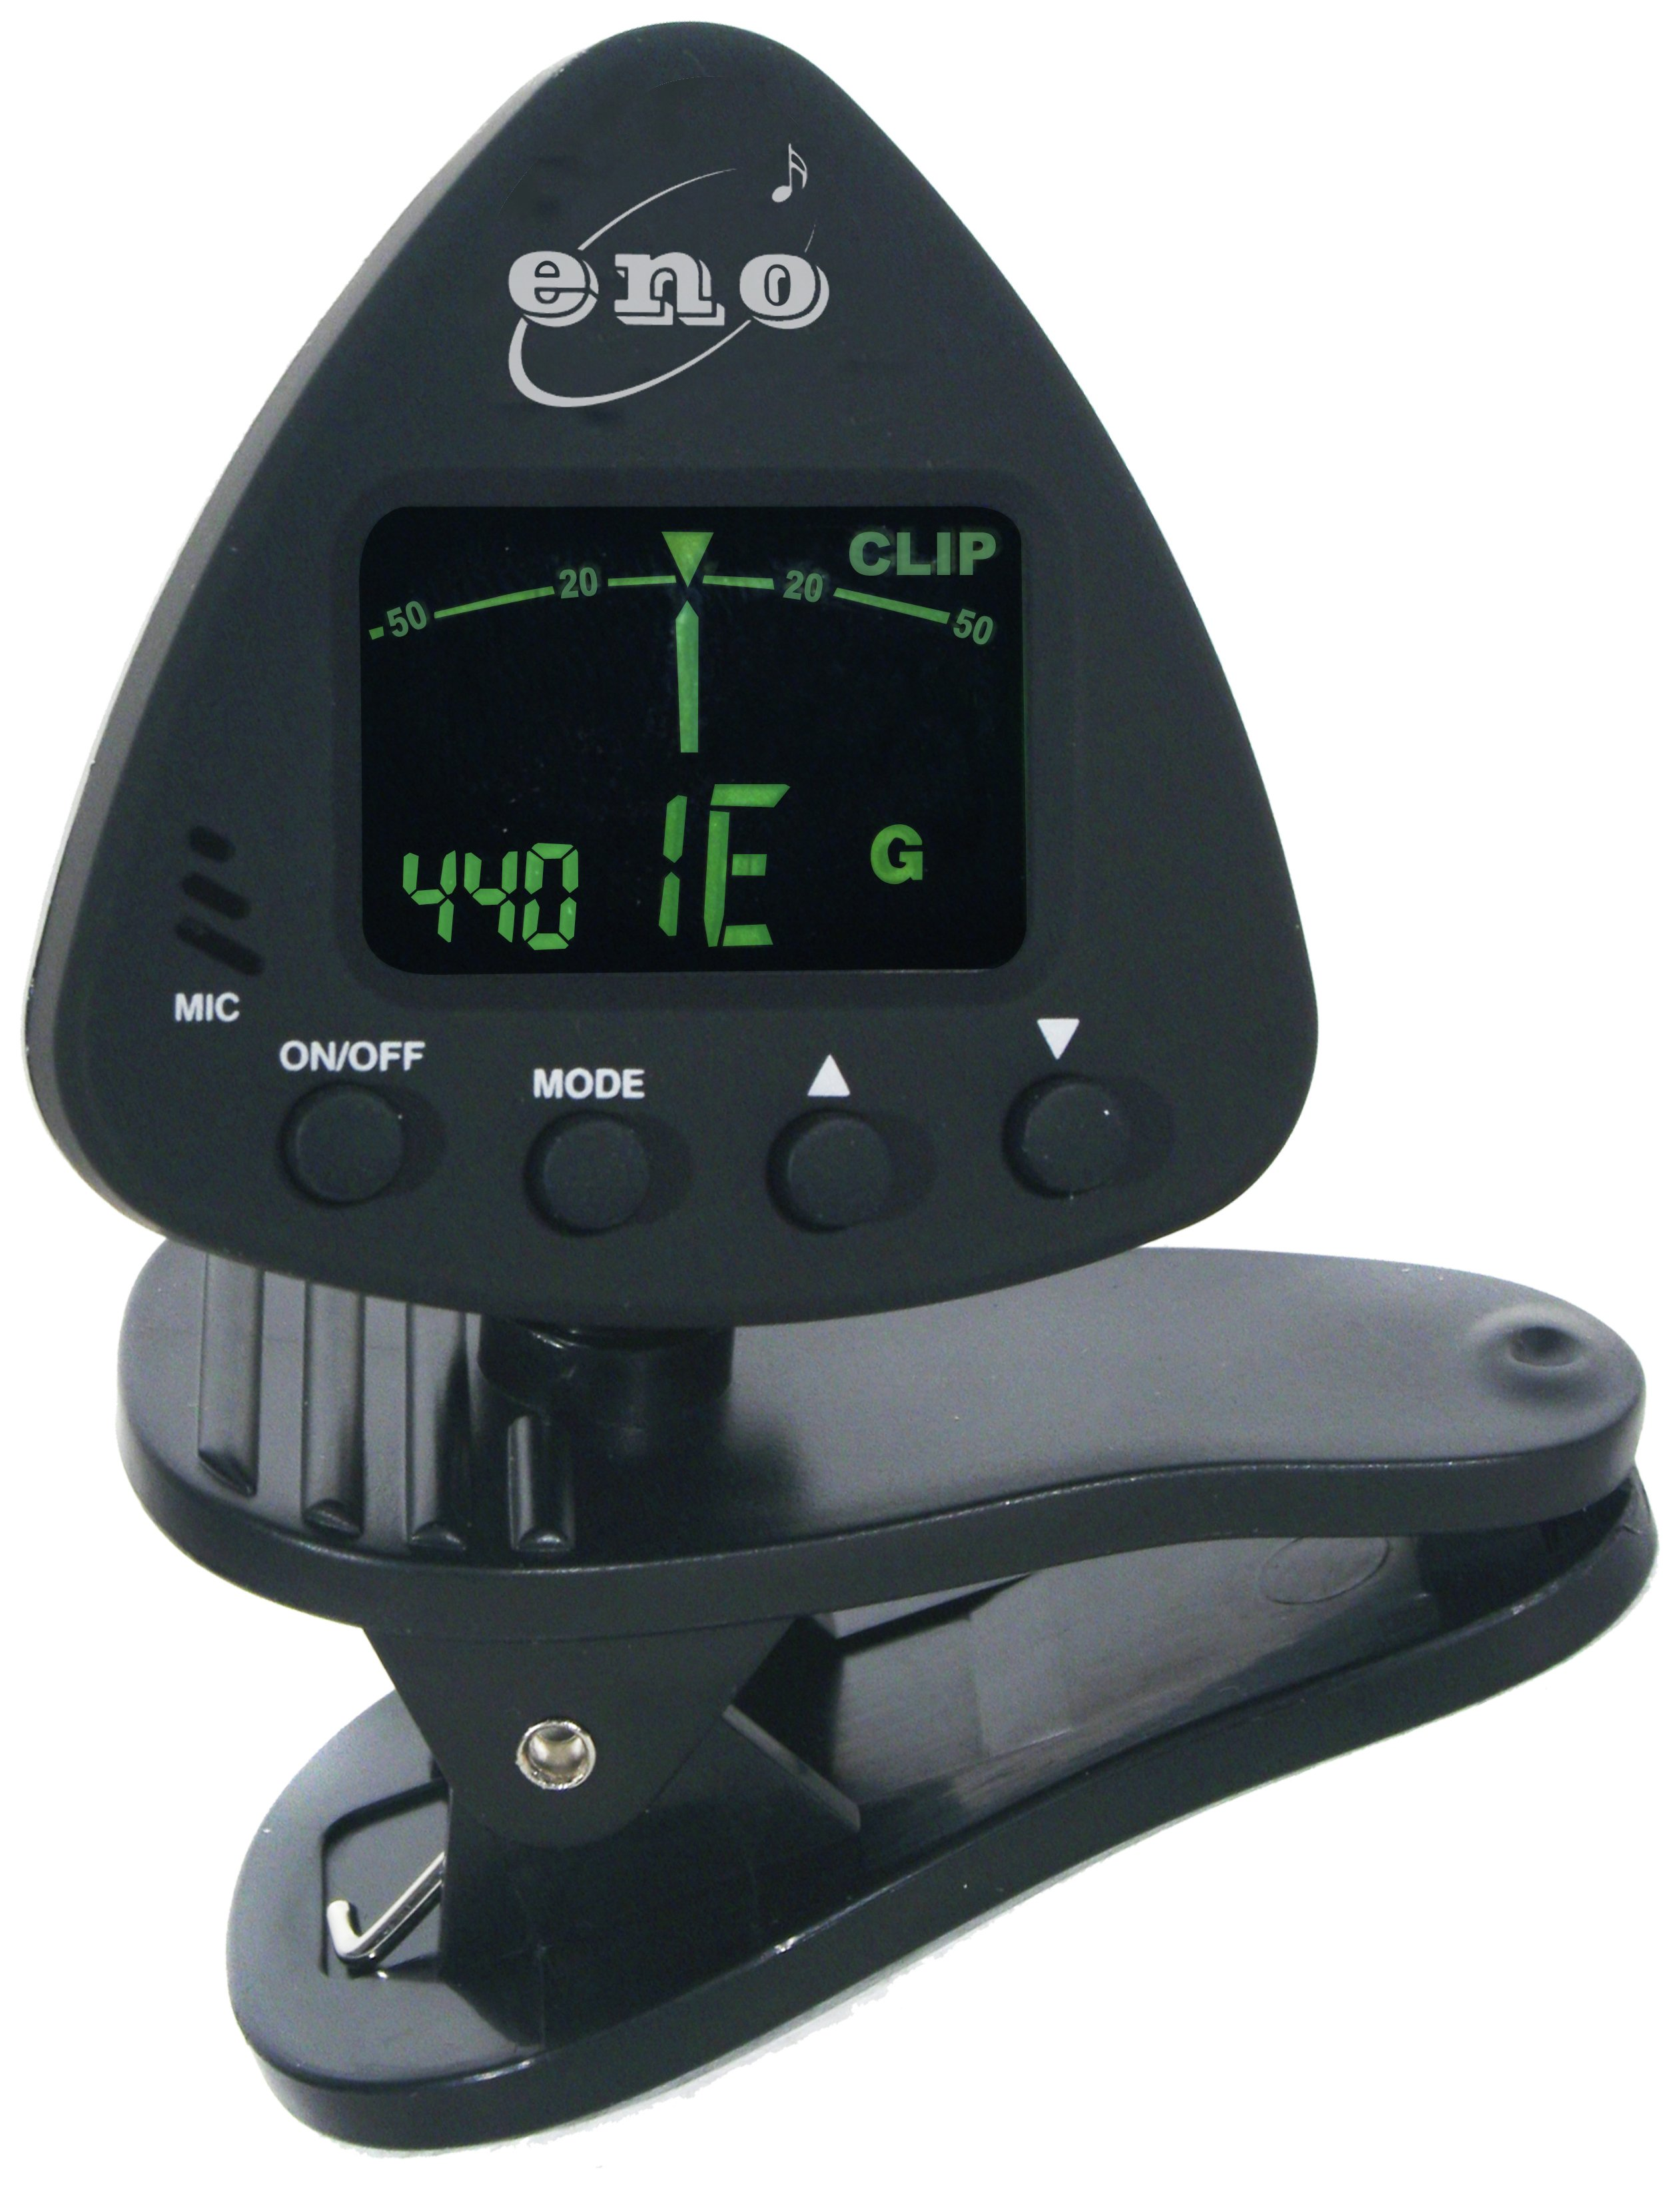 Eno Clip On Chromatic Guitar Tuner with LCD Display